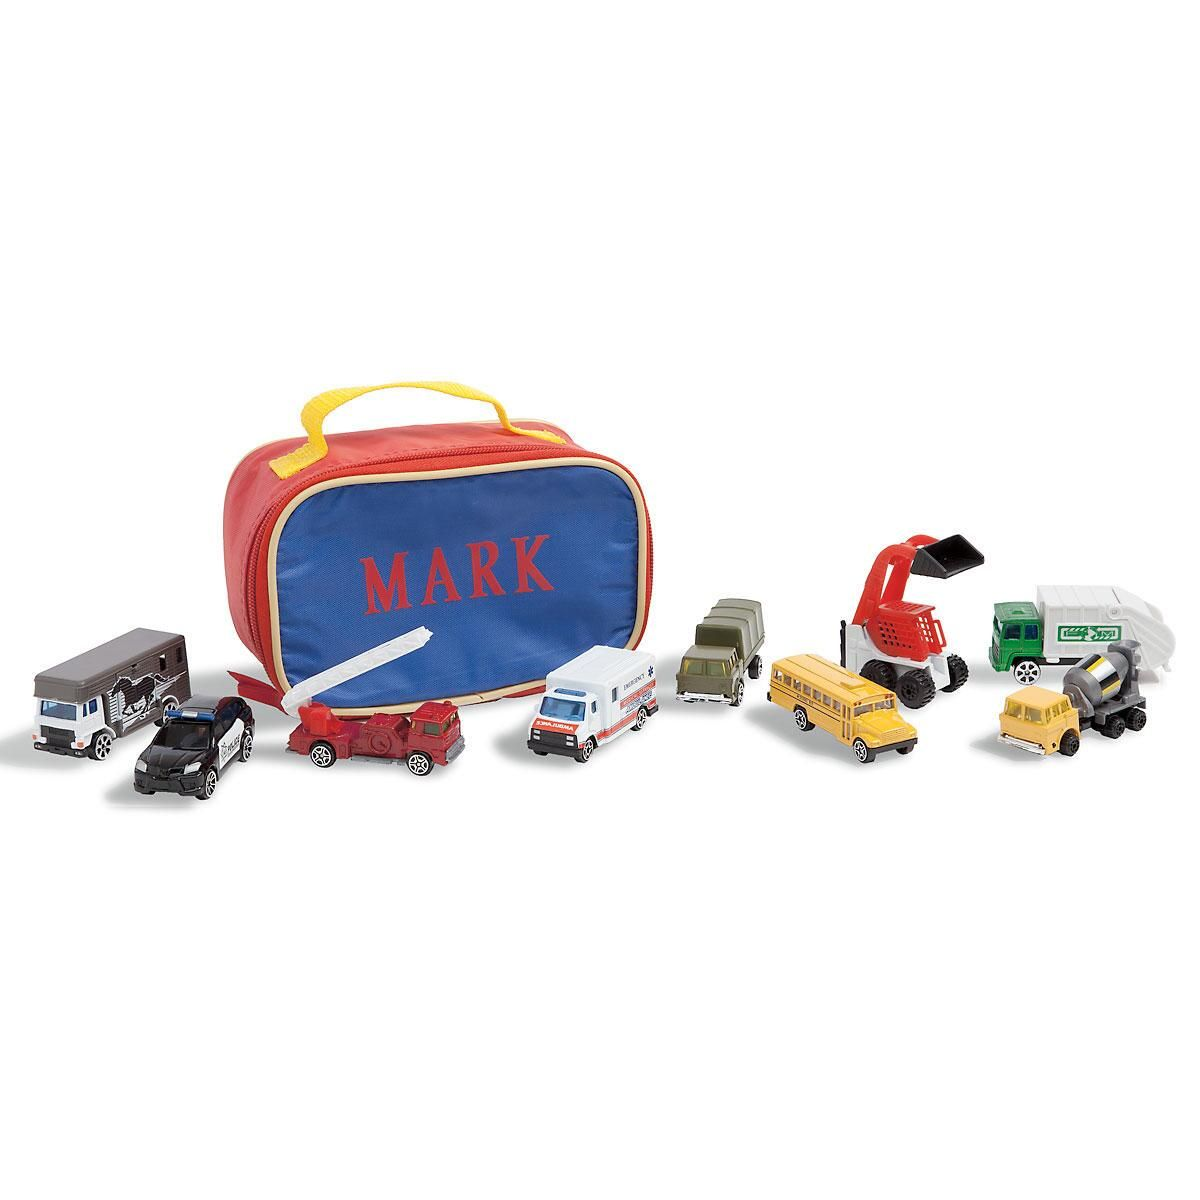 City Cars In Personalized Case